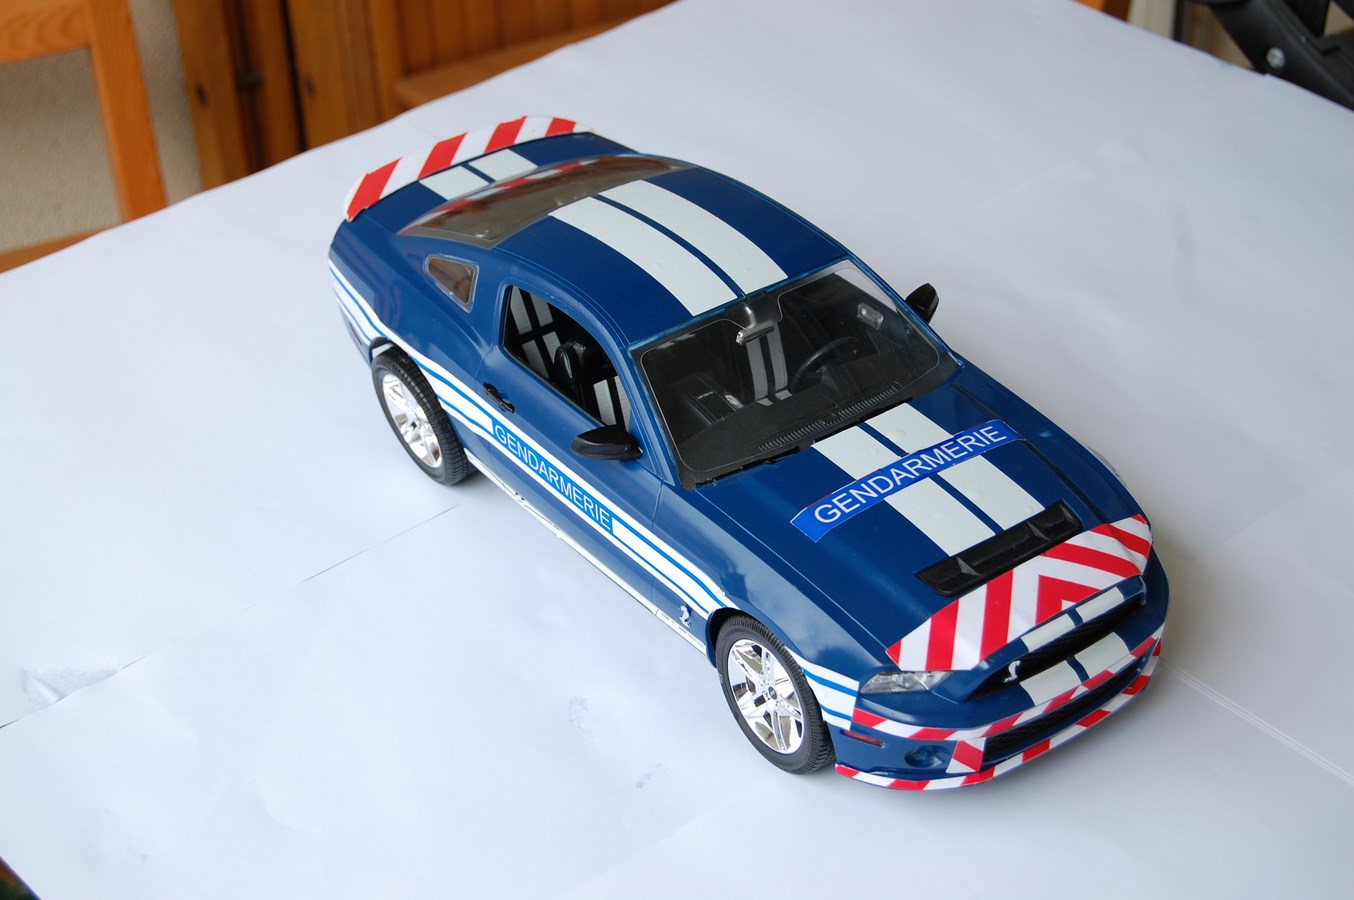 Shelby GT 500 version imaginaire Gendarmerie - Page 2 621836Mustang39Copier